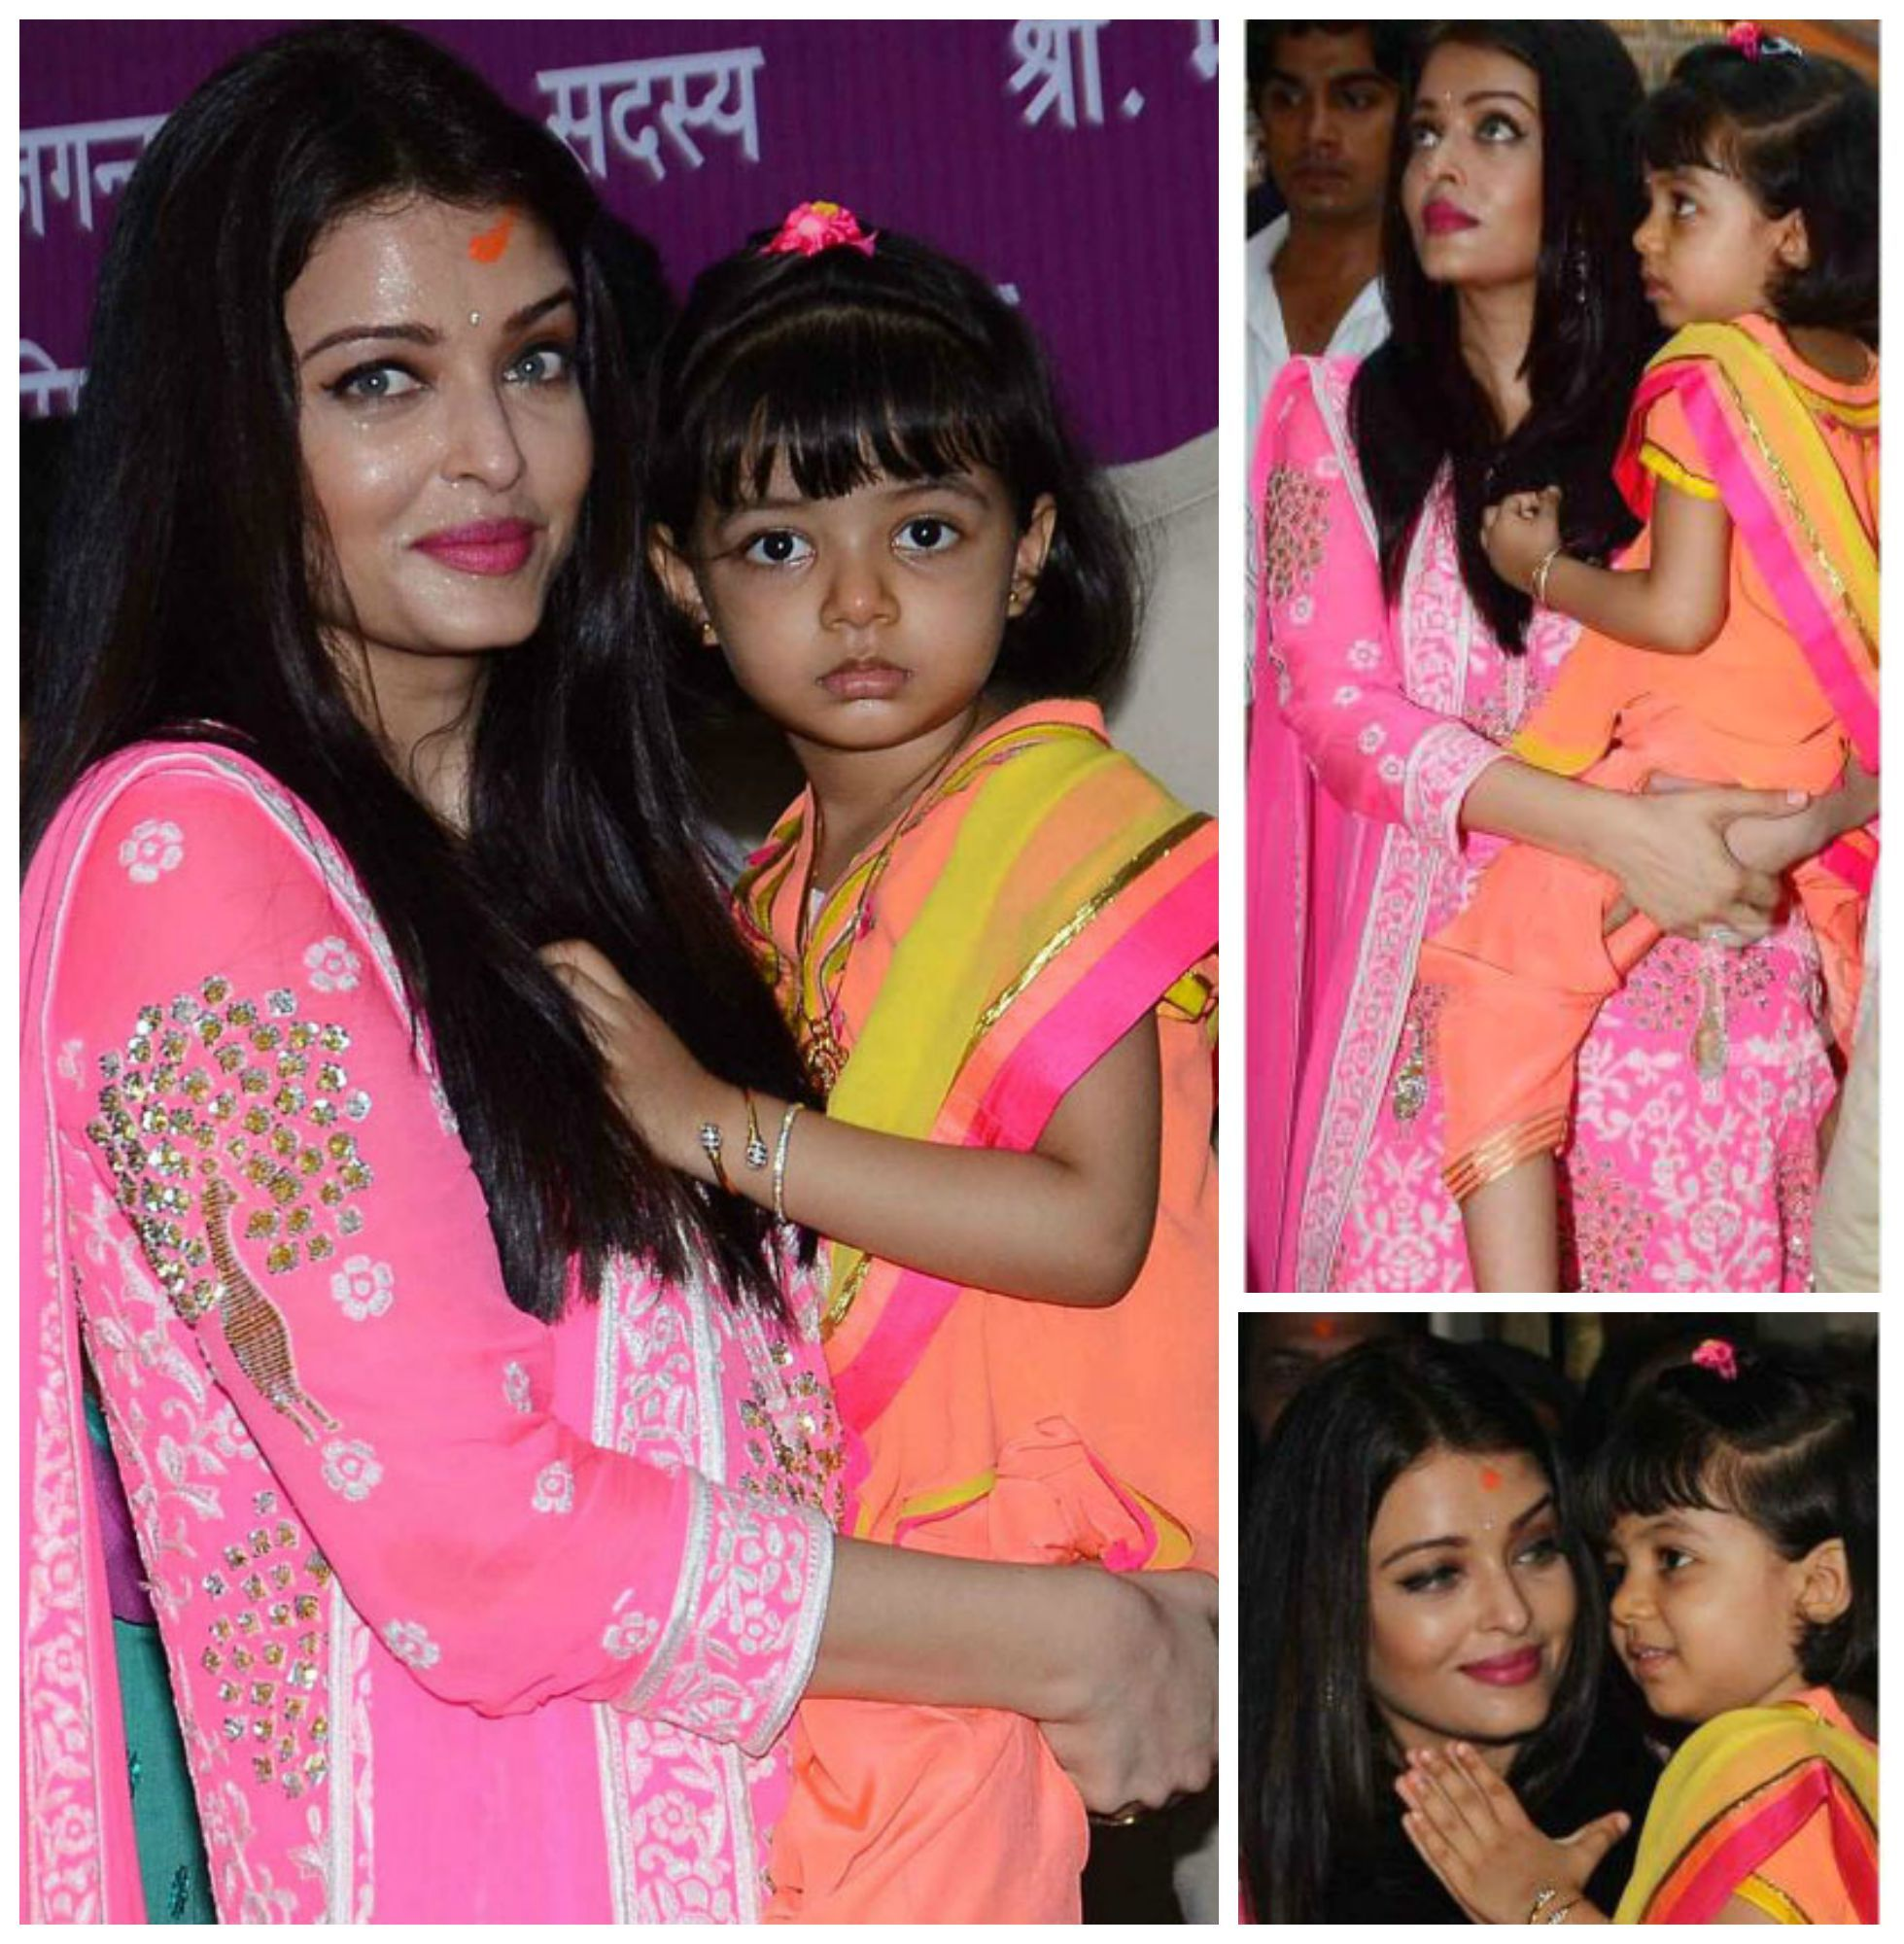 GANPATI KE DARSHAN Aishwarya Rai Bachchan and her adorable daughter ...